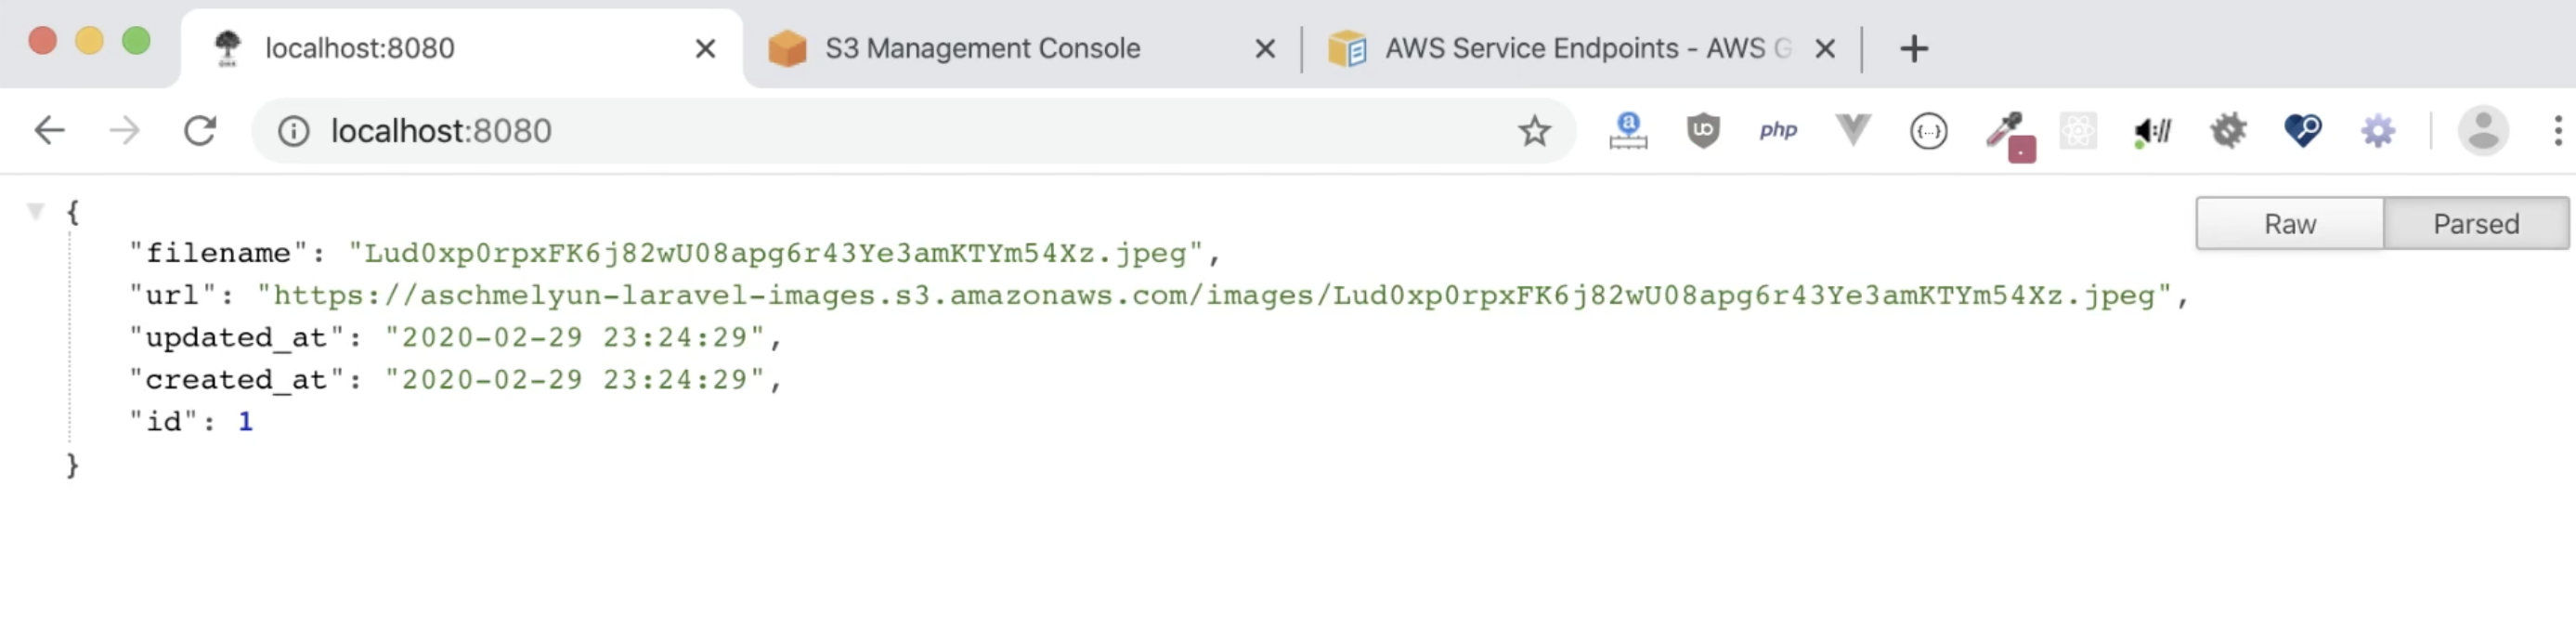 Screenshot of JSON image object from our Laravel app